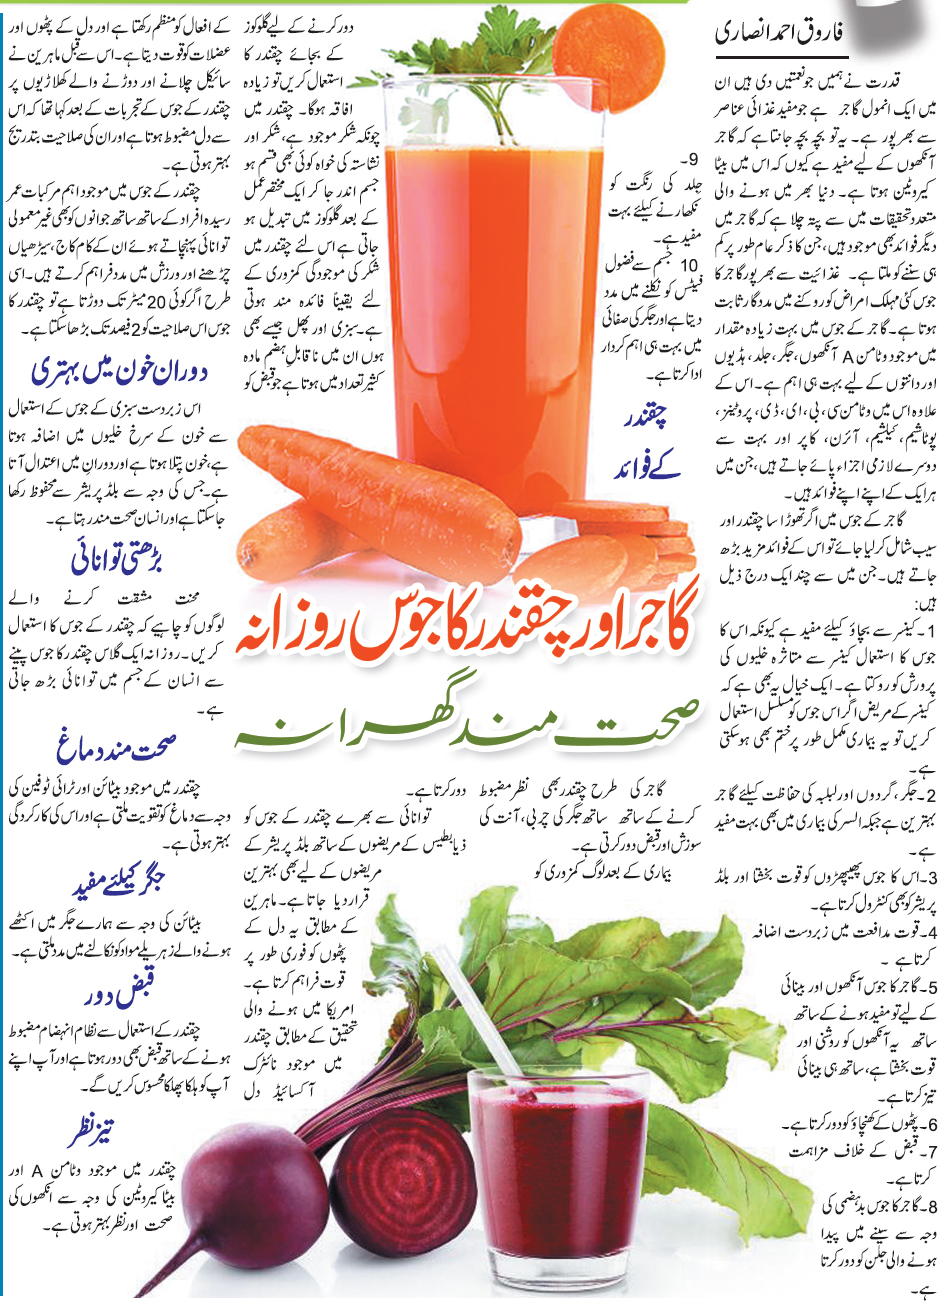 Health Benefits of Carrot & Beet Juice (Urdu-English)